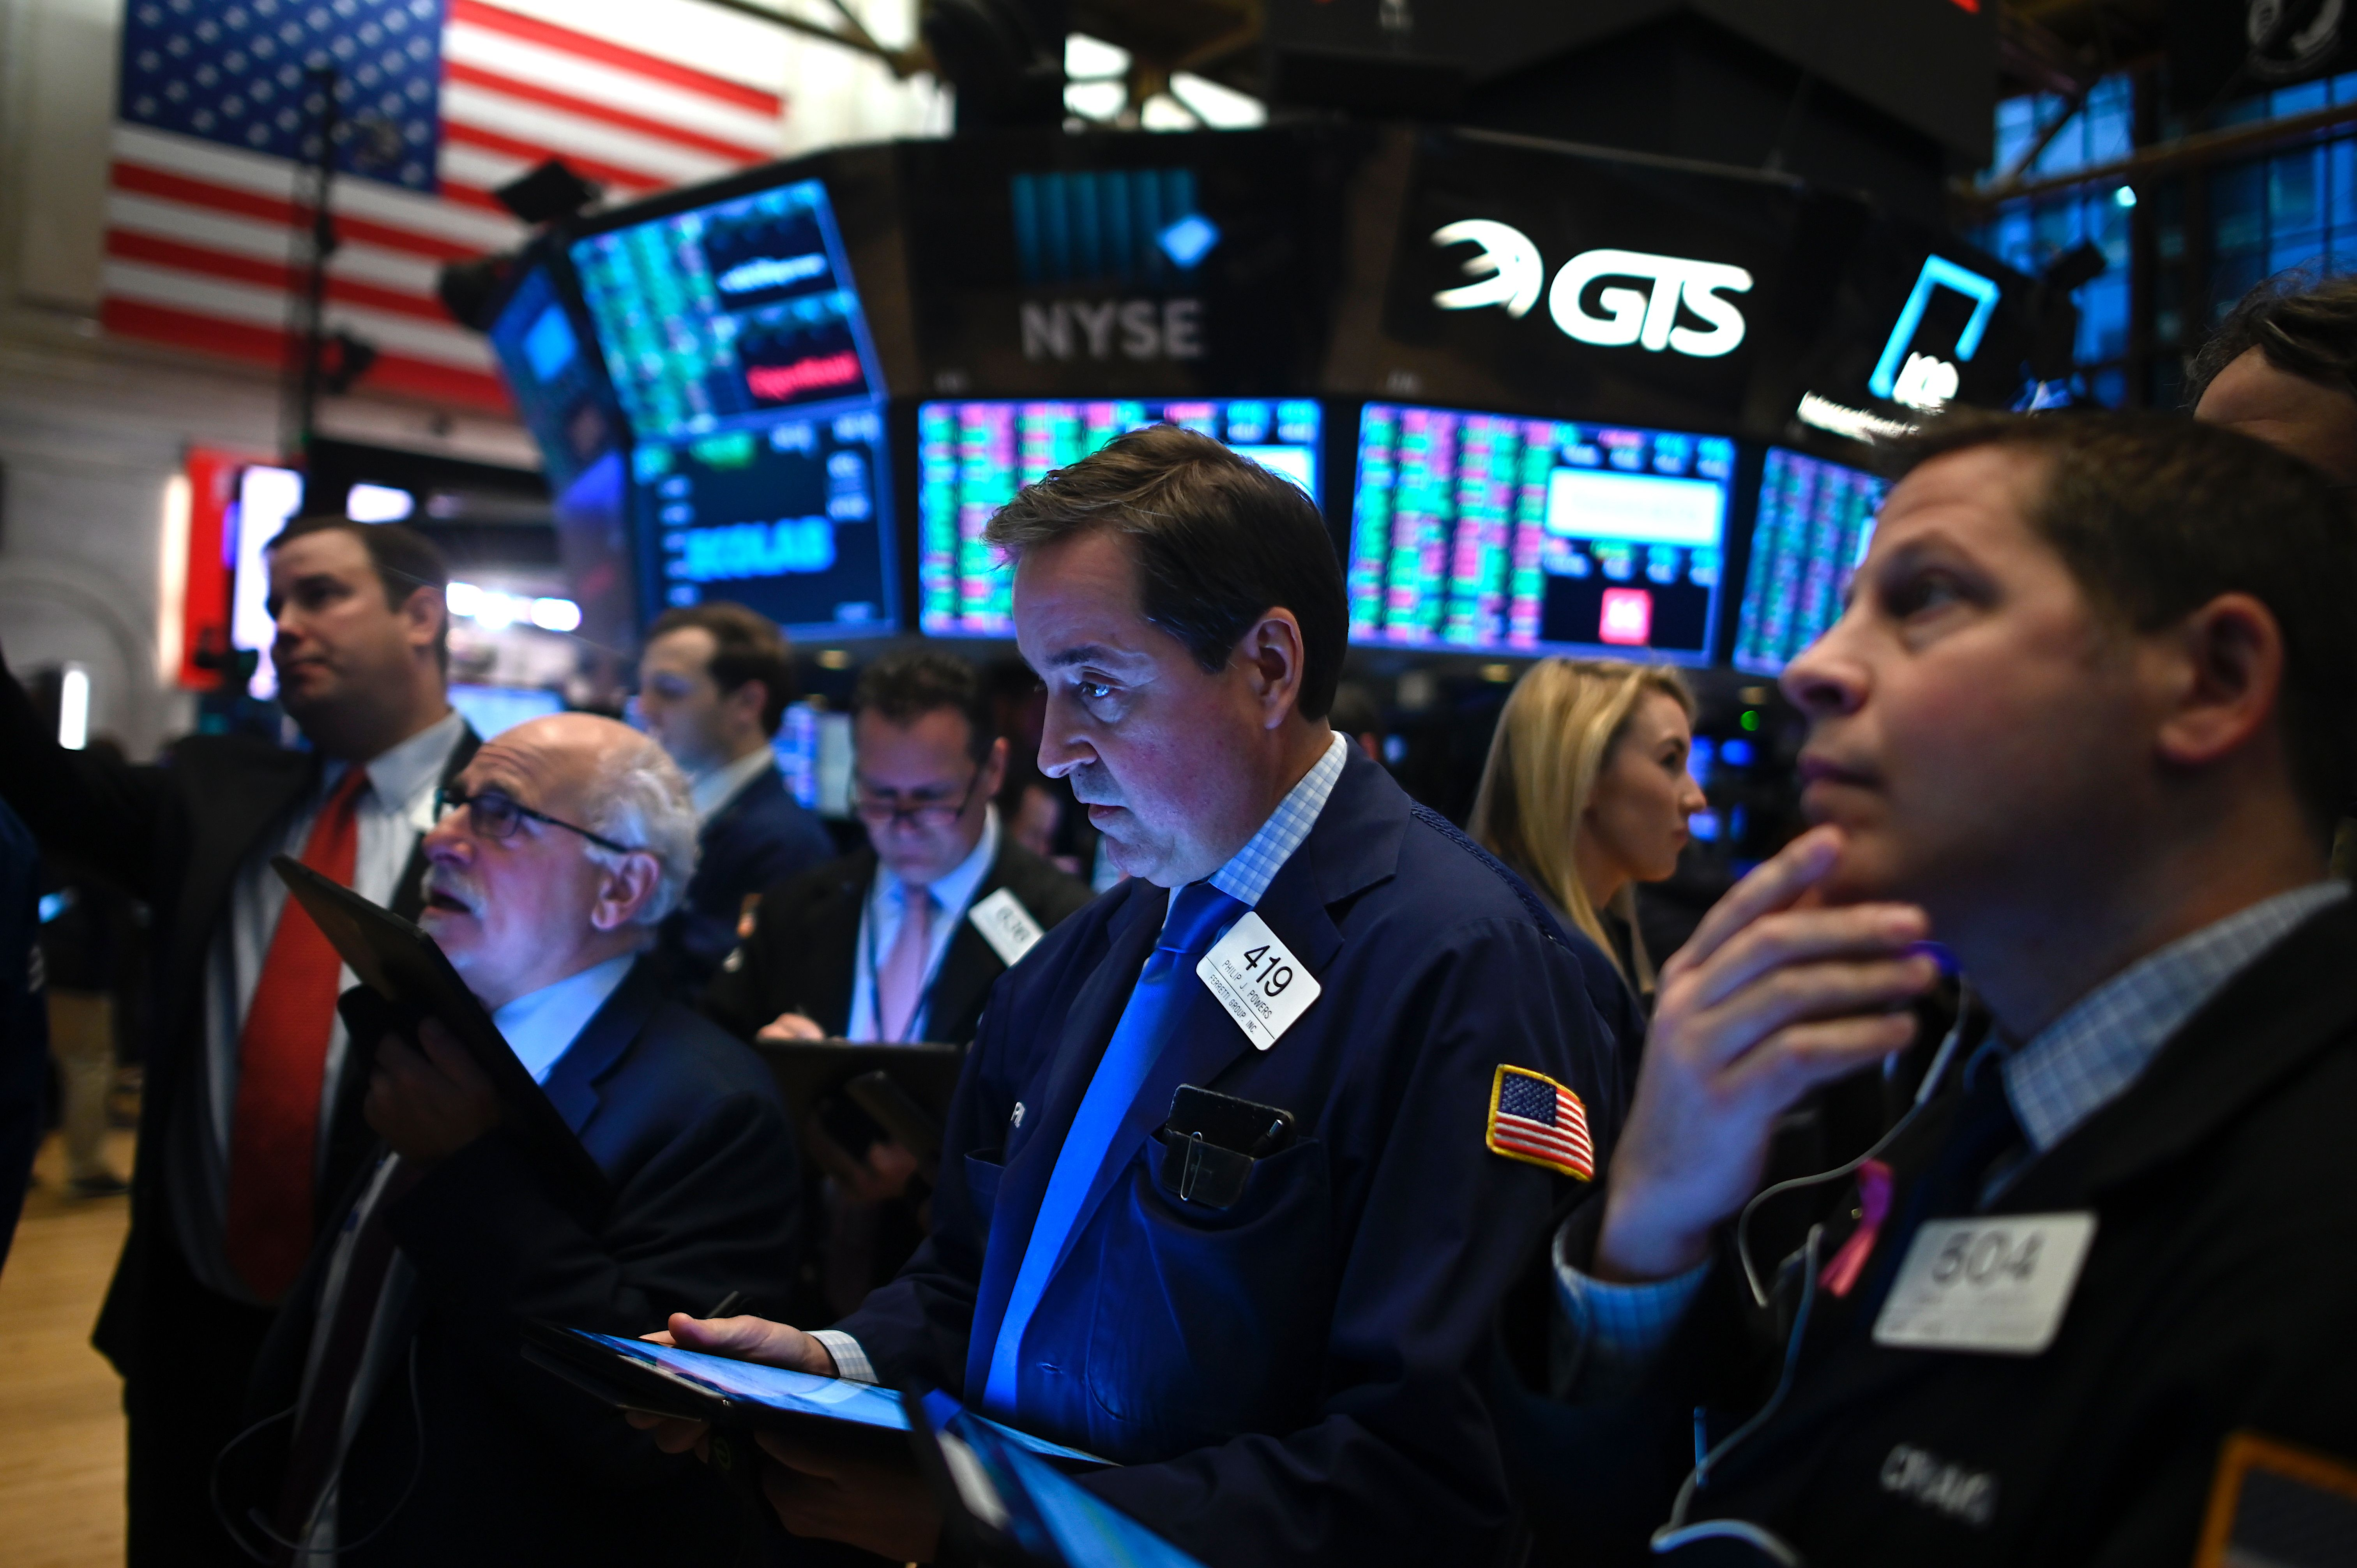 Traders work during the opening bell at the New York Stock Exchange (NYSE) on November 4, 2019 at Wall Street in New York City. (JOHANNES EISELE/AFP via Getty Images)